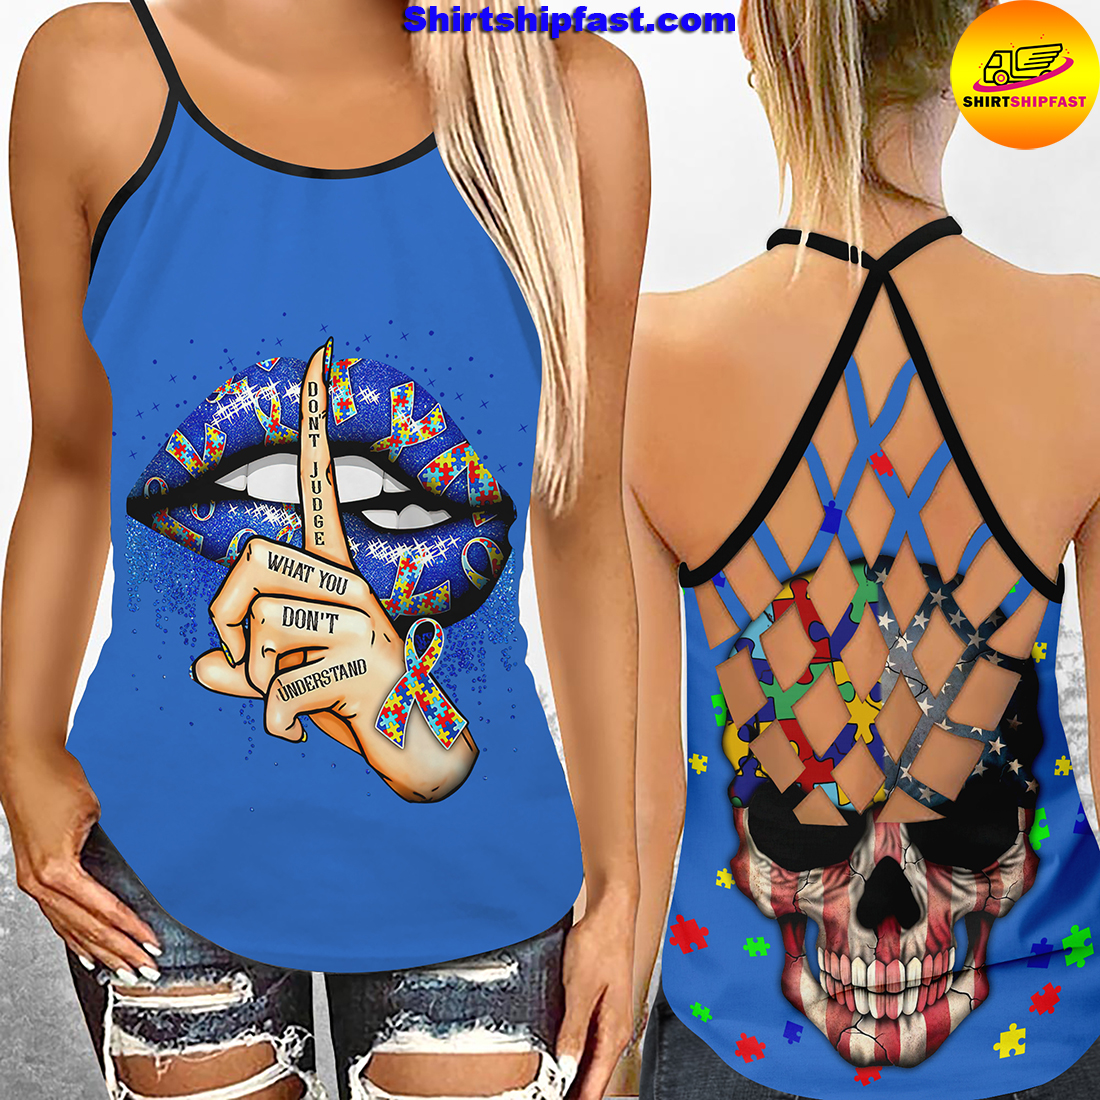 Don't jugde what you don't understand criss-cross open back camisole tank top and leggings